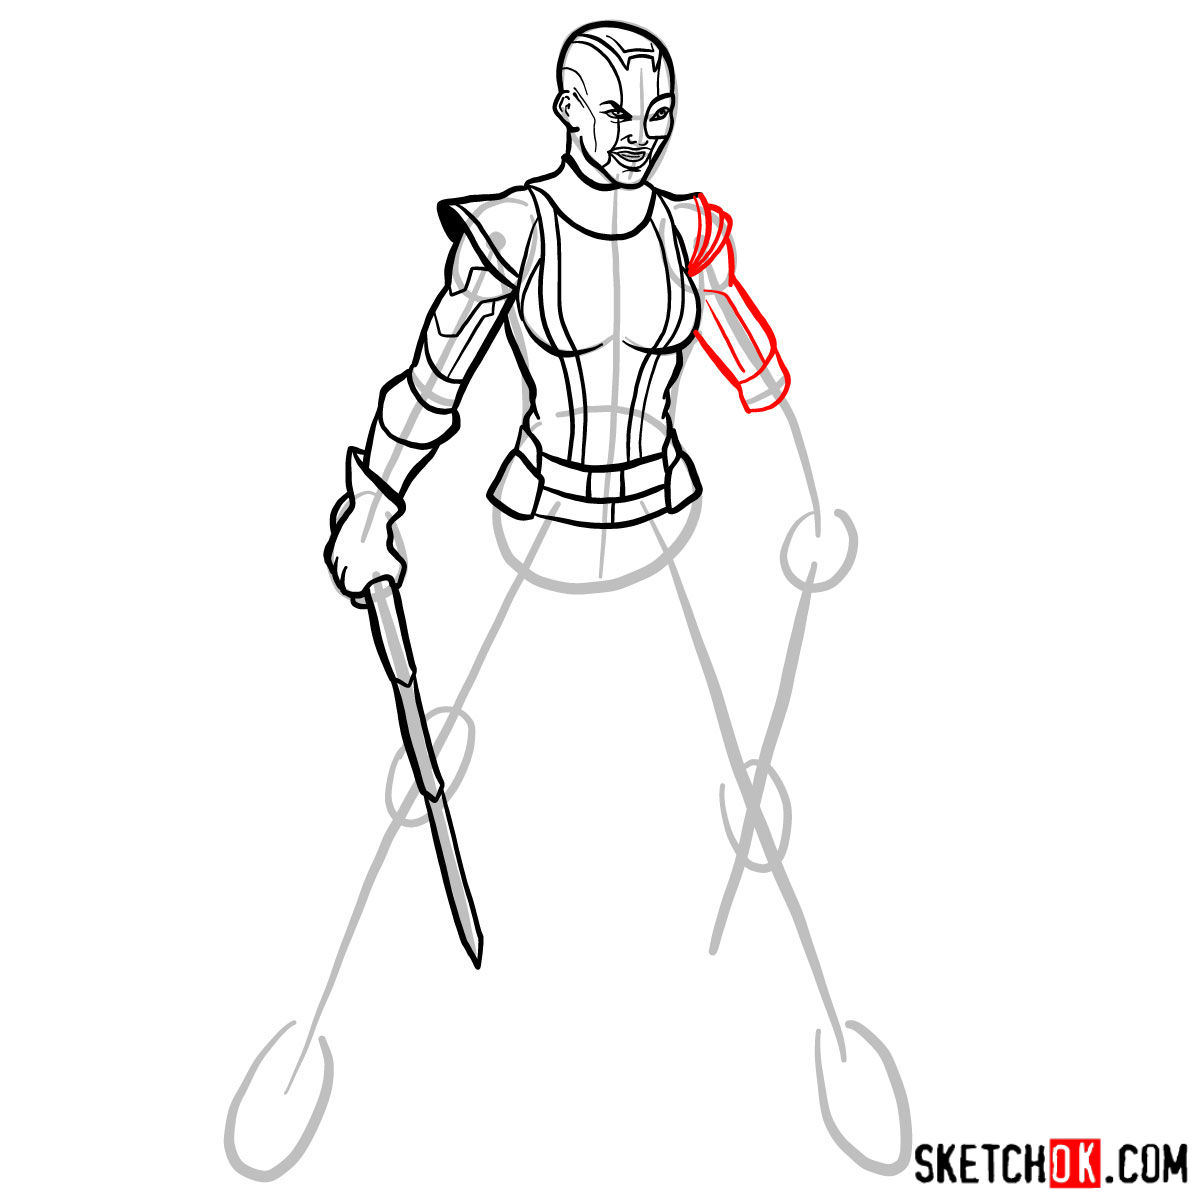 How to draw Nebula from Guardians of the Galaxy - step 11